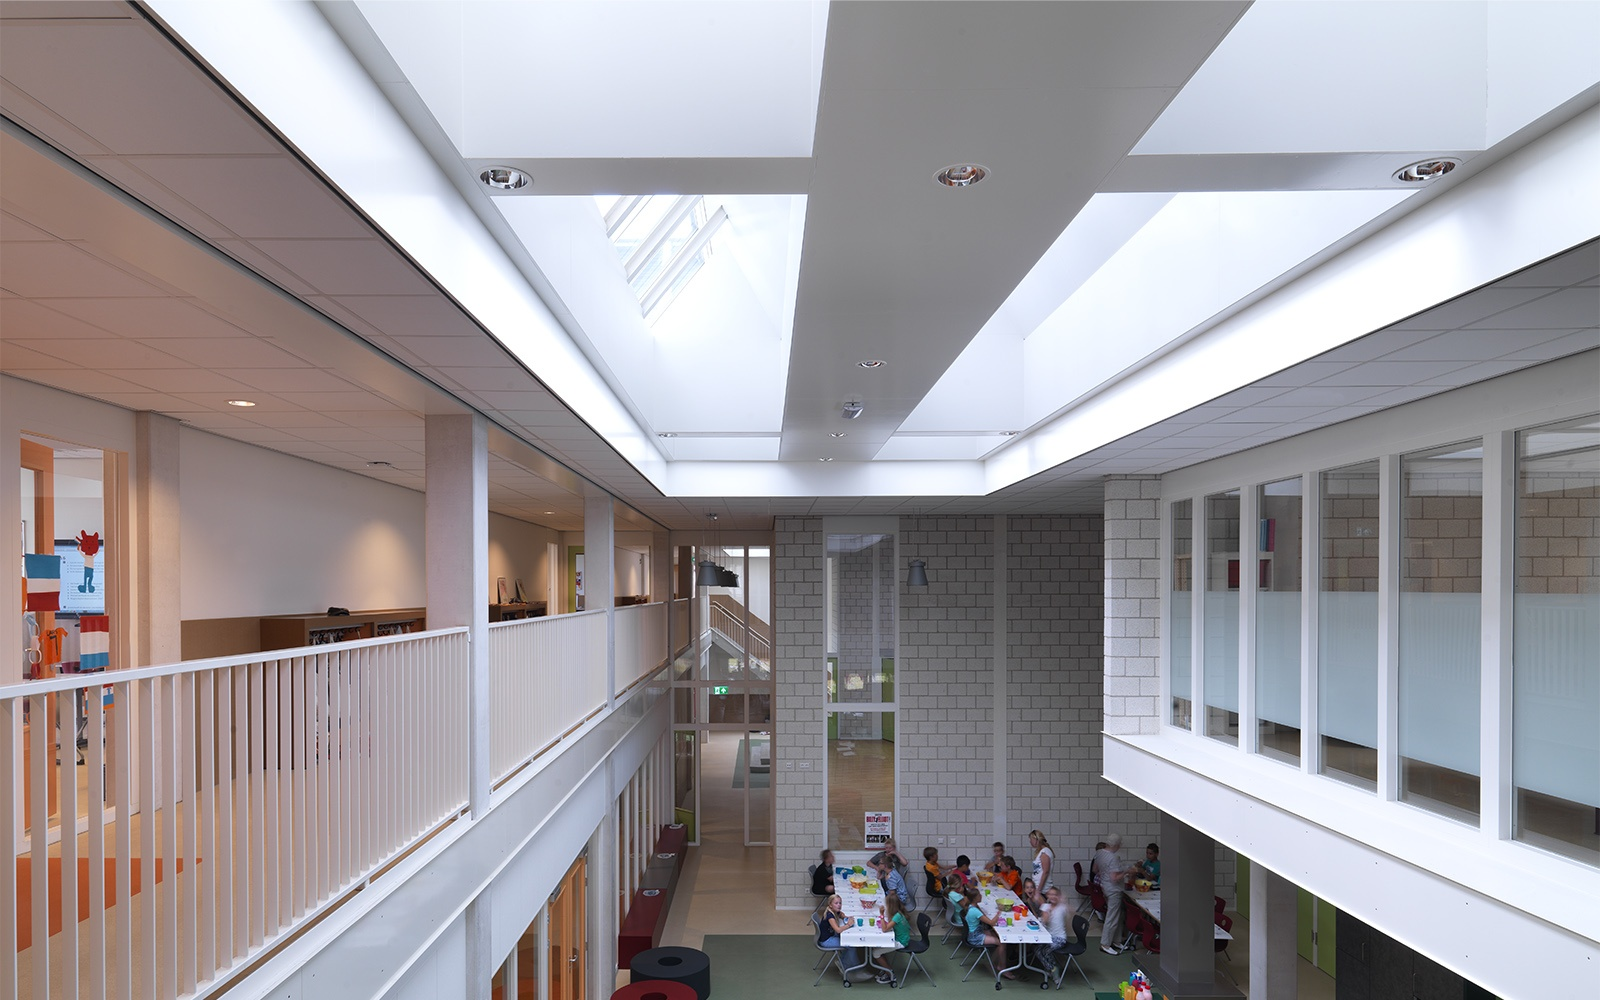 Why is natural light so important in school design